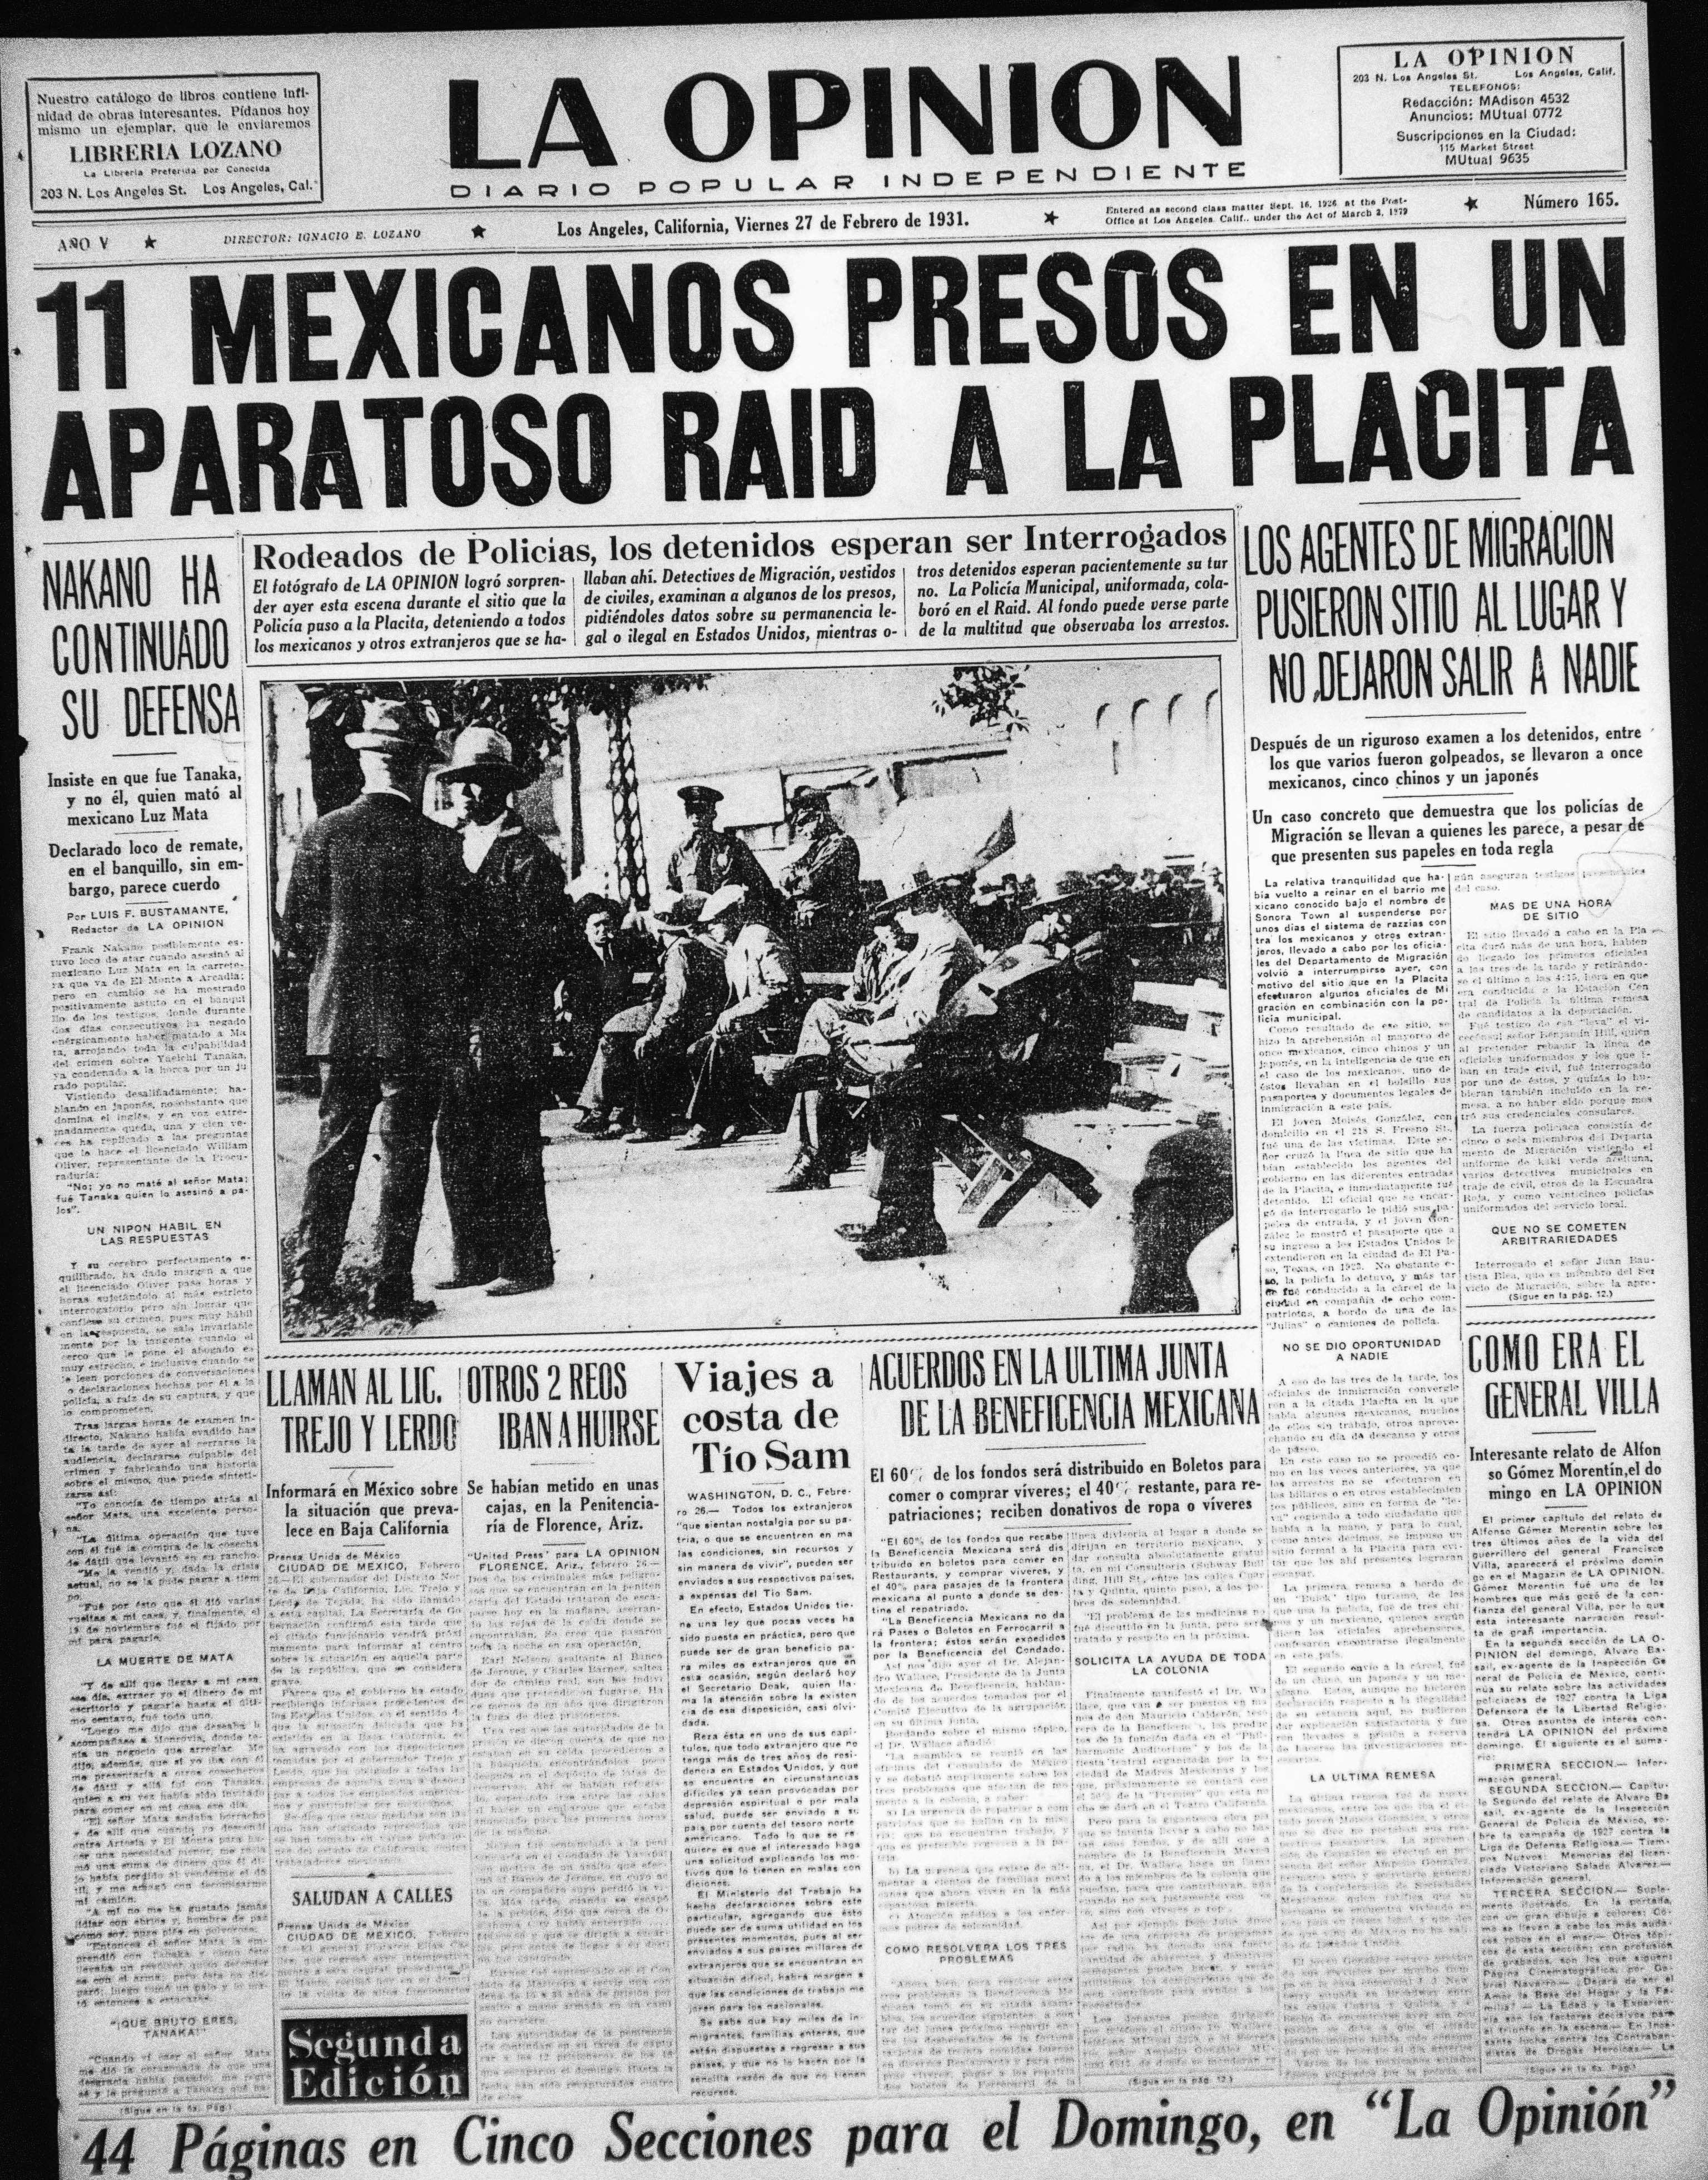 Newspaper 11 Mexicanos Presos En Un Aparatoso Raid a La Placita | Zinn Education Project